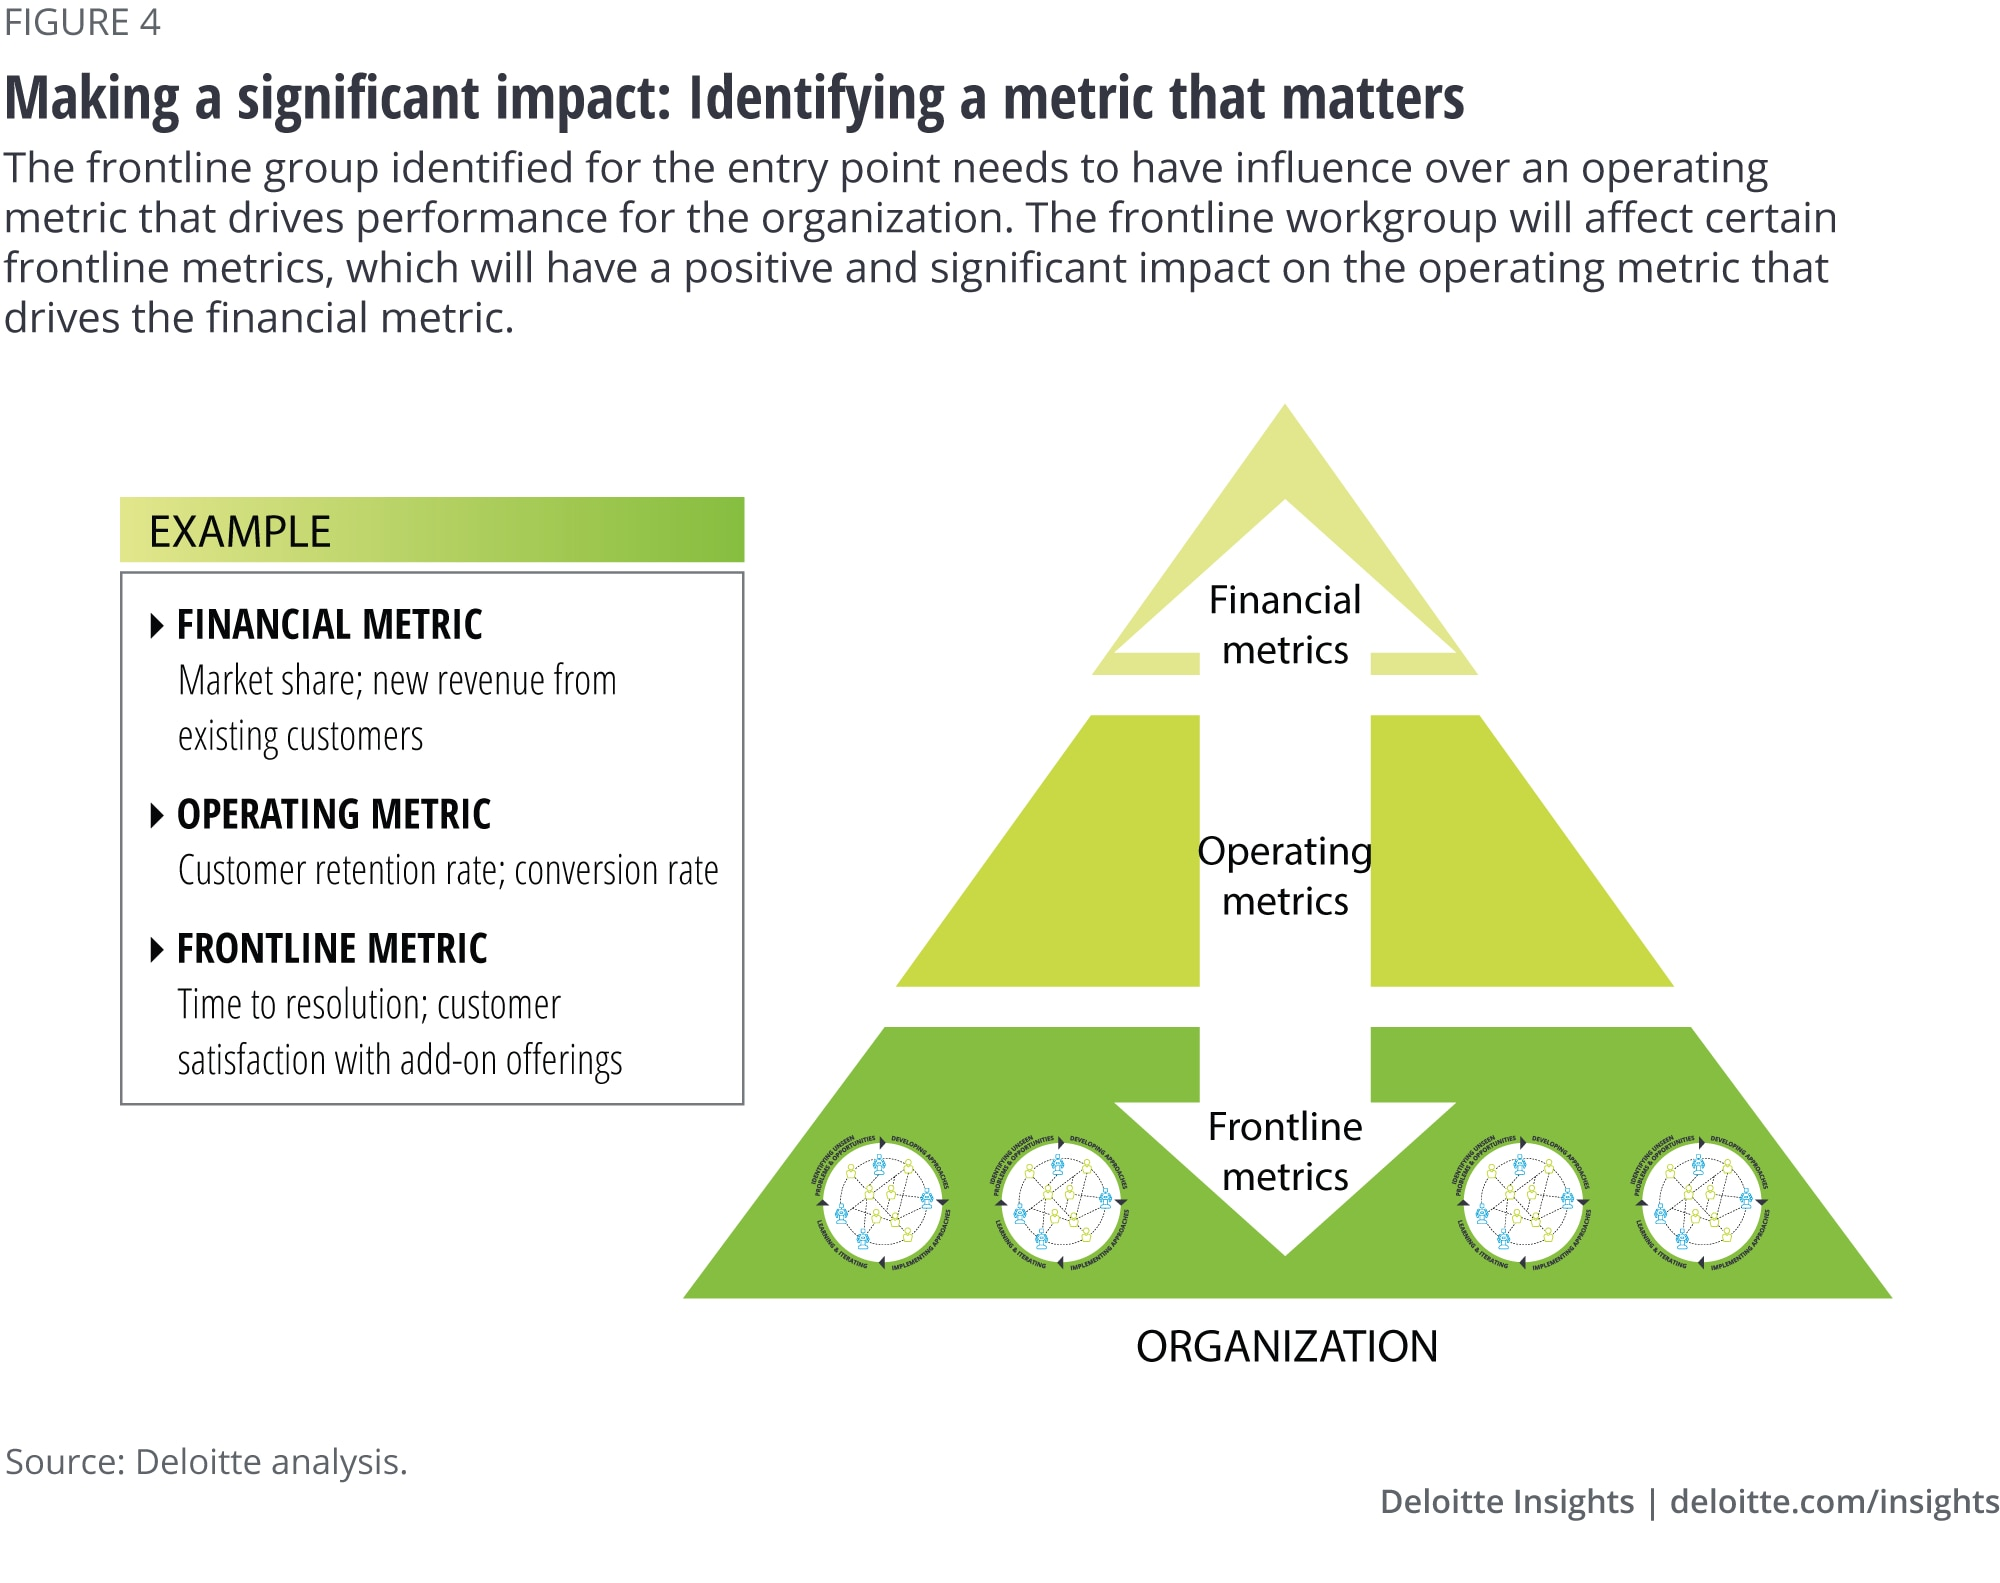 Making a significant impact: Identifying a metric that matters